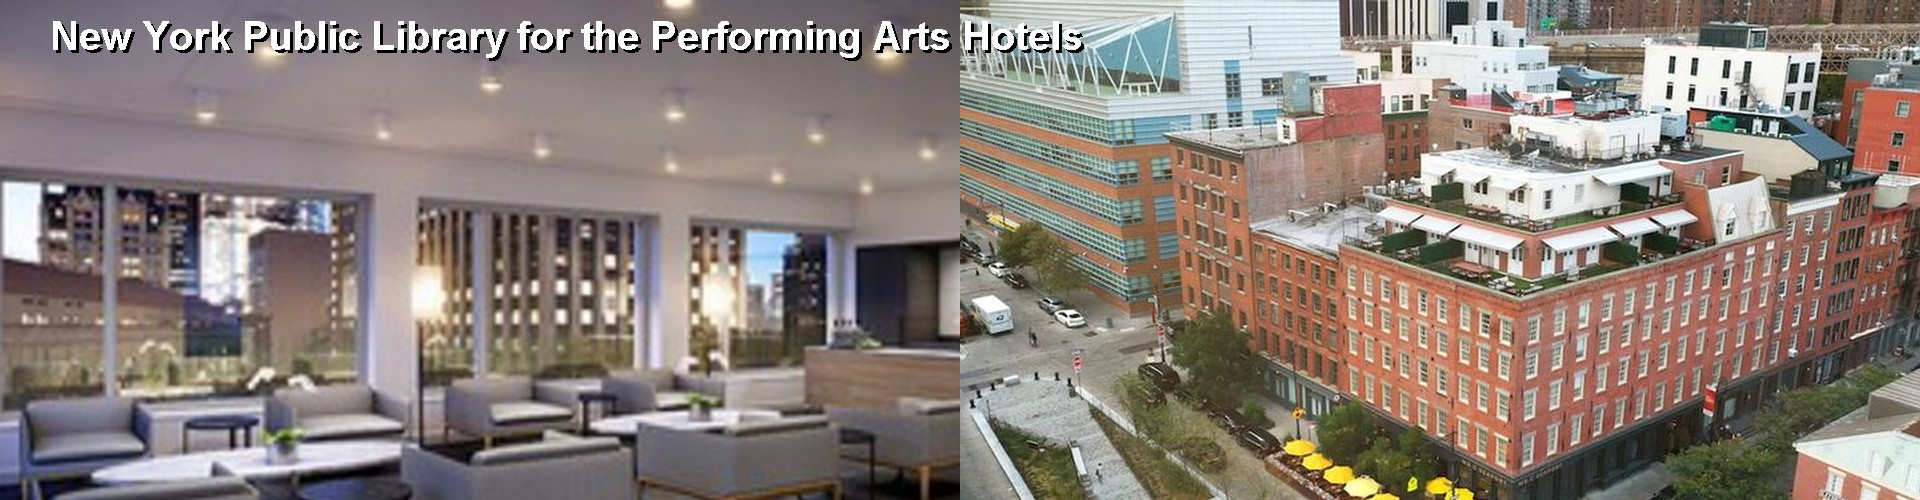 5 Best Hotels near New York Public Library for the Performing Arts